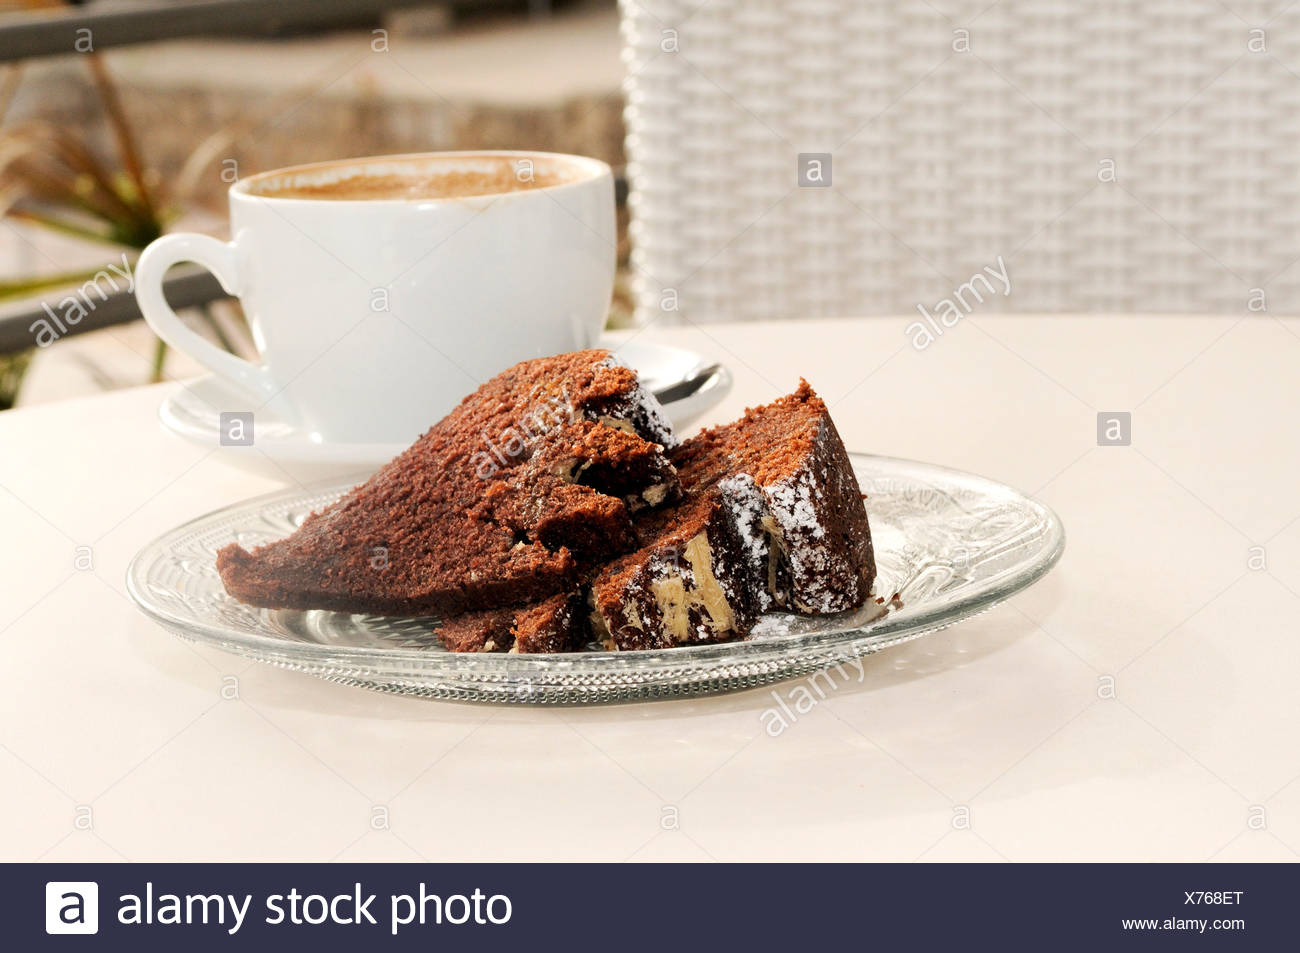 Chocolate cake and coffee - Stock Image